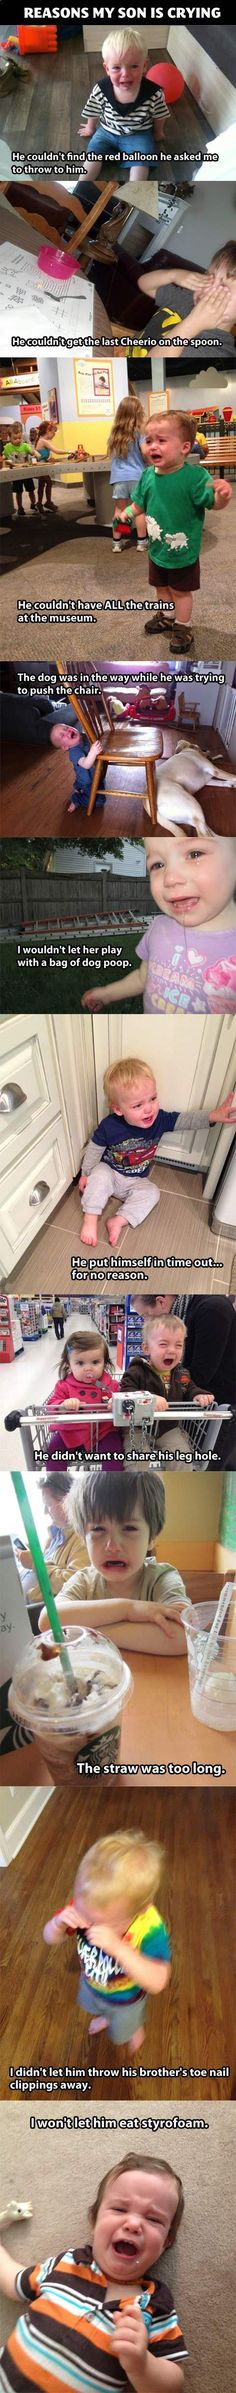 Reasons My Son Is Crying…glad my kid isnt the only one to throw fits for the craziest reasons!